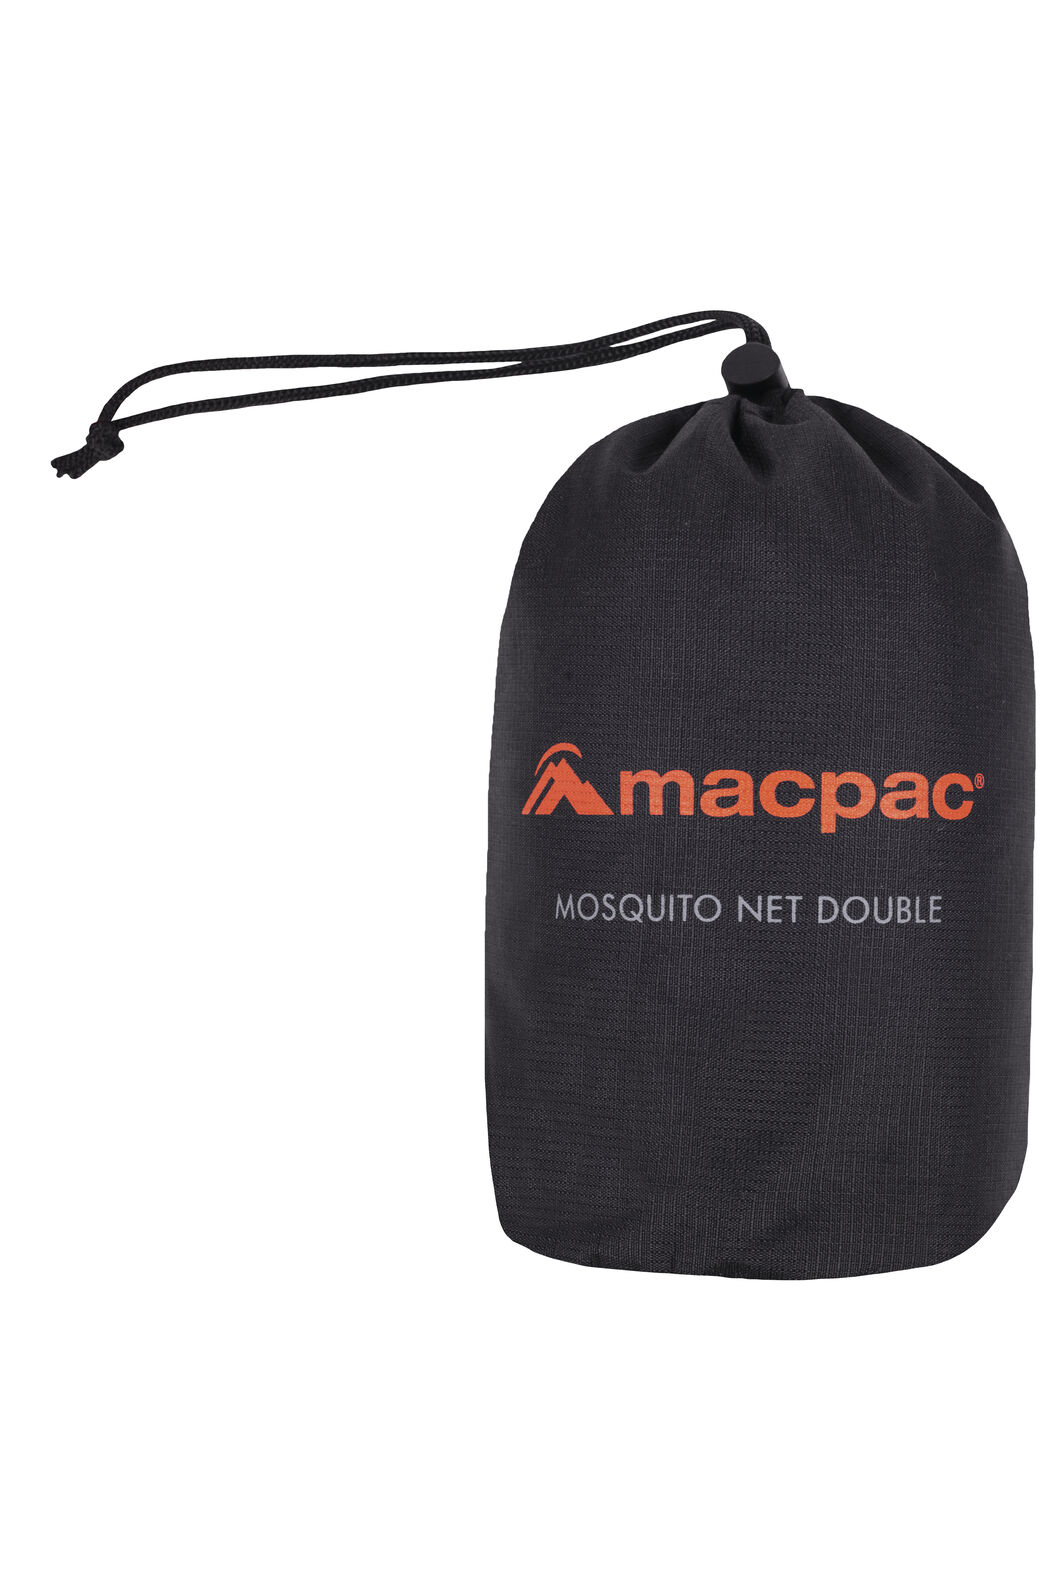 Macpac Mosquito Net Double, Black, hi-res